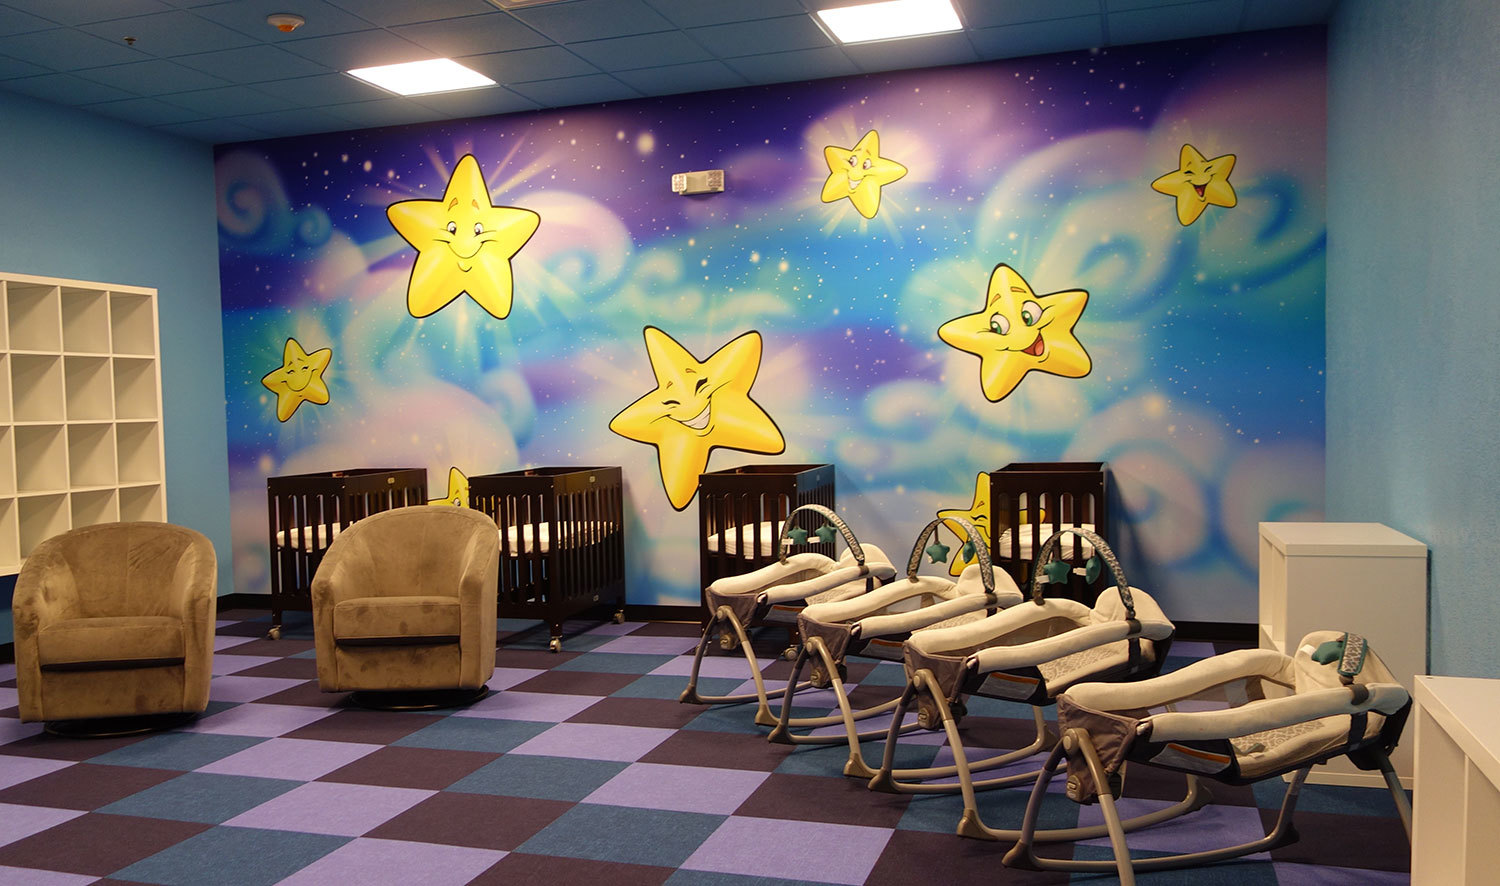 Heavenly Skies and Stars Wall Covering in Nursery at Choose Life Church